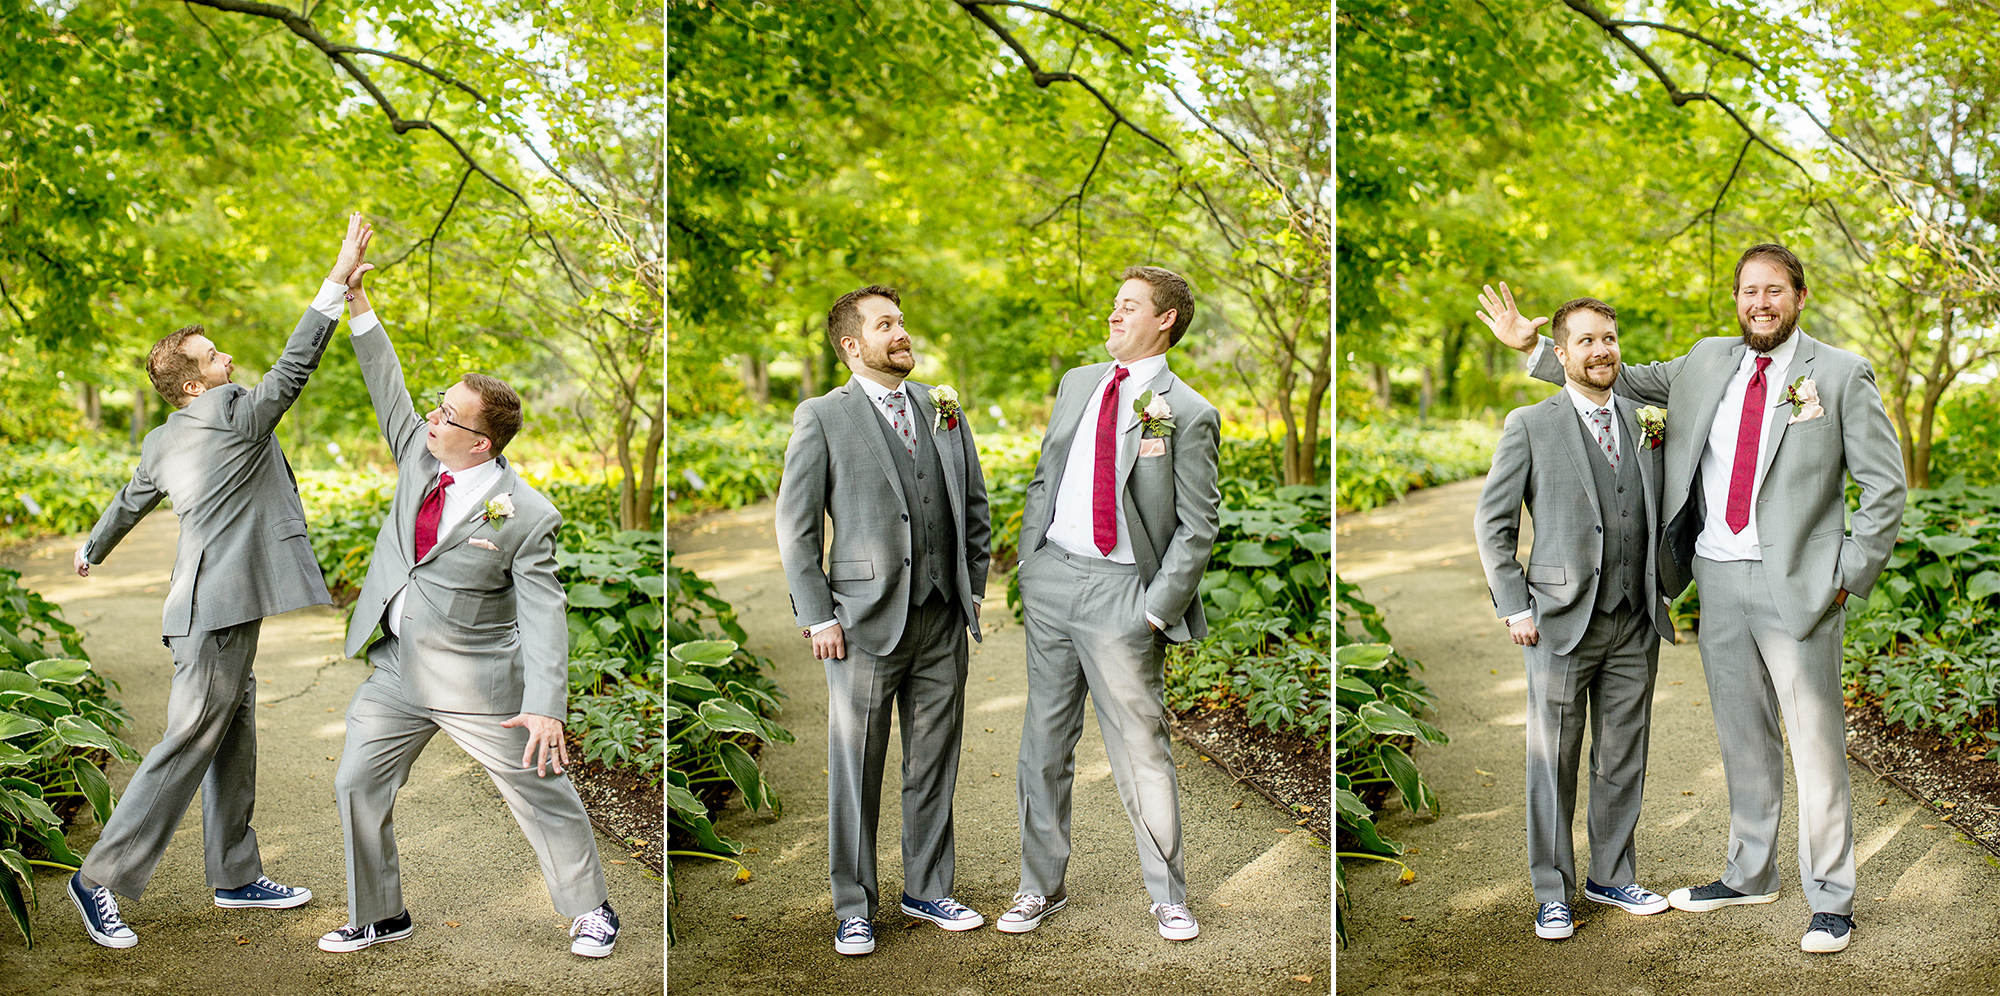 Seriously_Sabrina_Photography_Lisle_Illinois_Morton_Arboretum_Wedding_Day_Gowen39.jpg